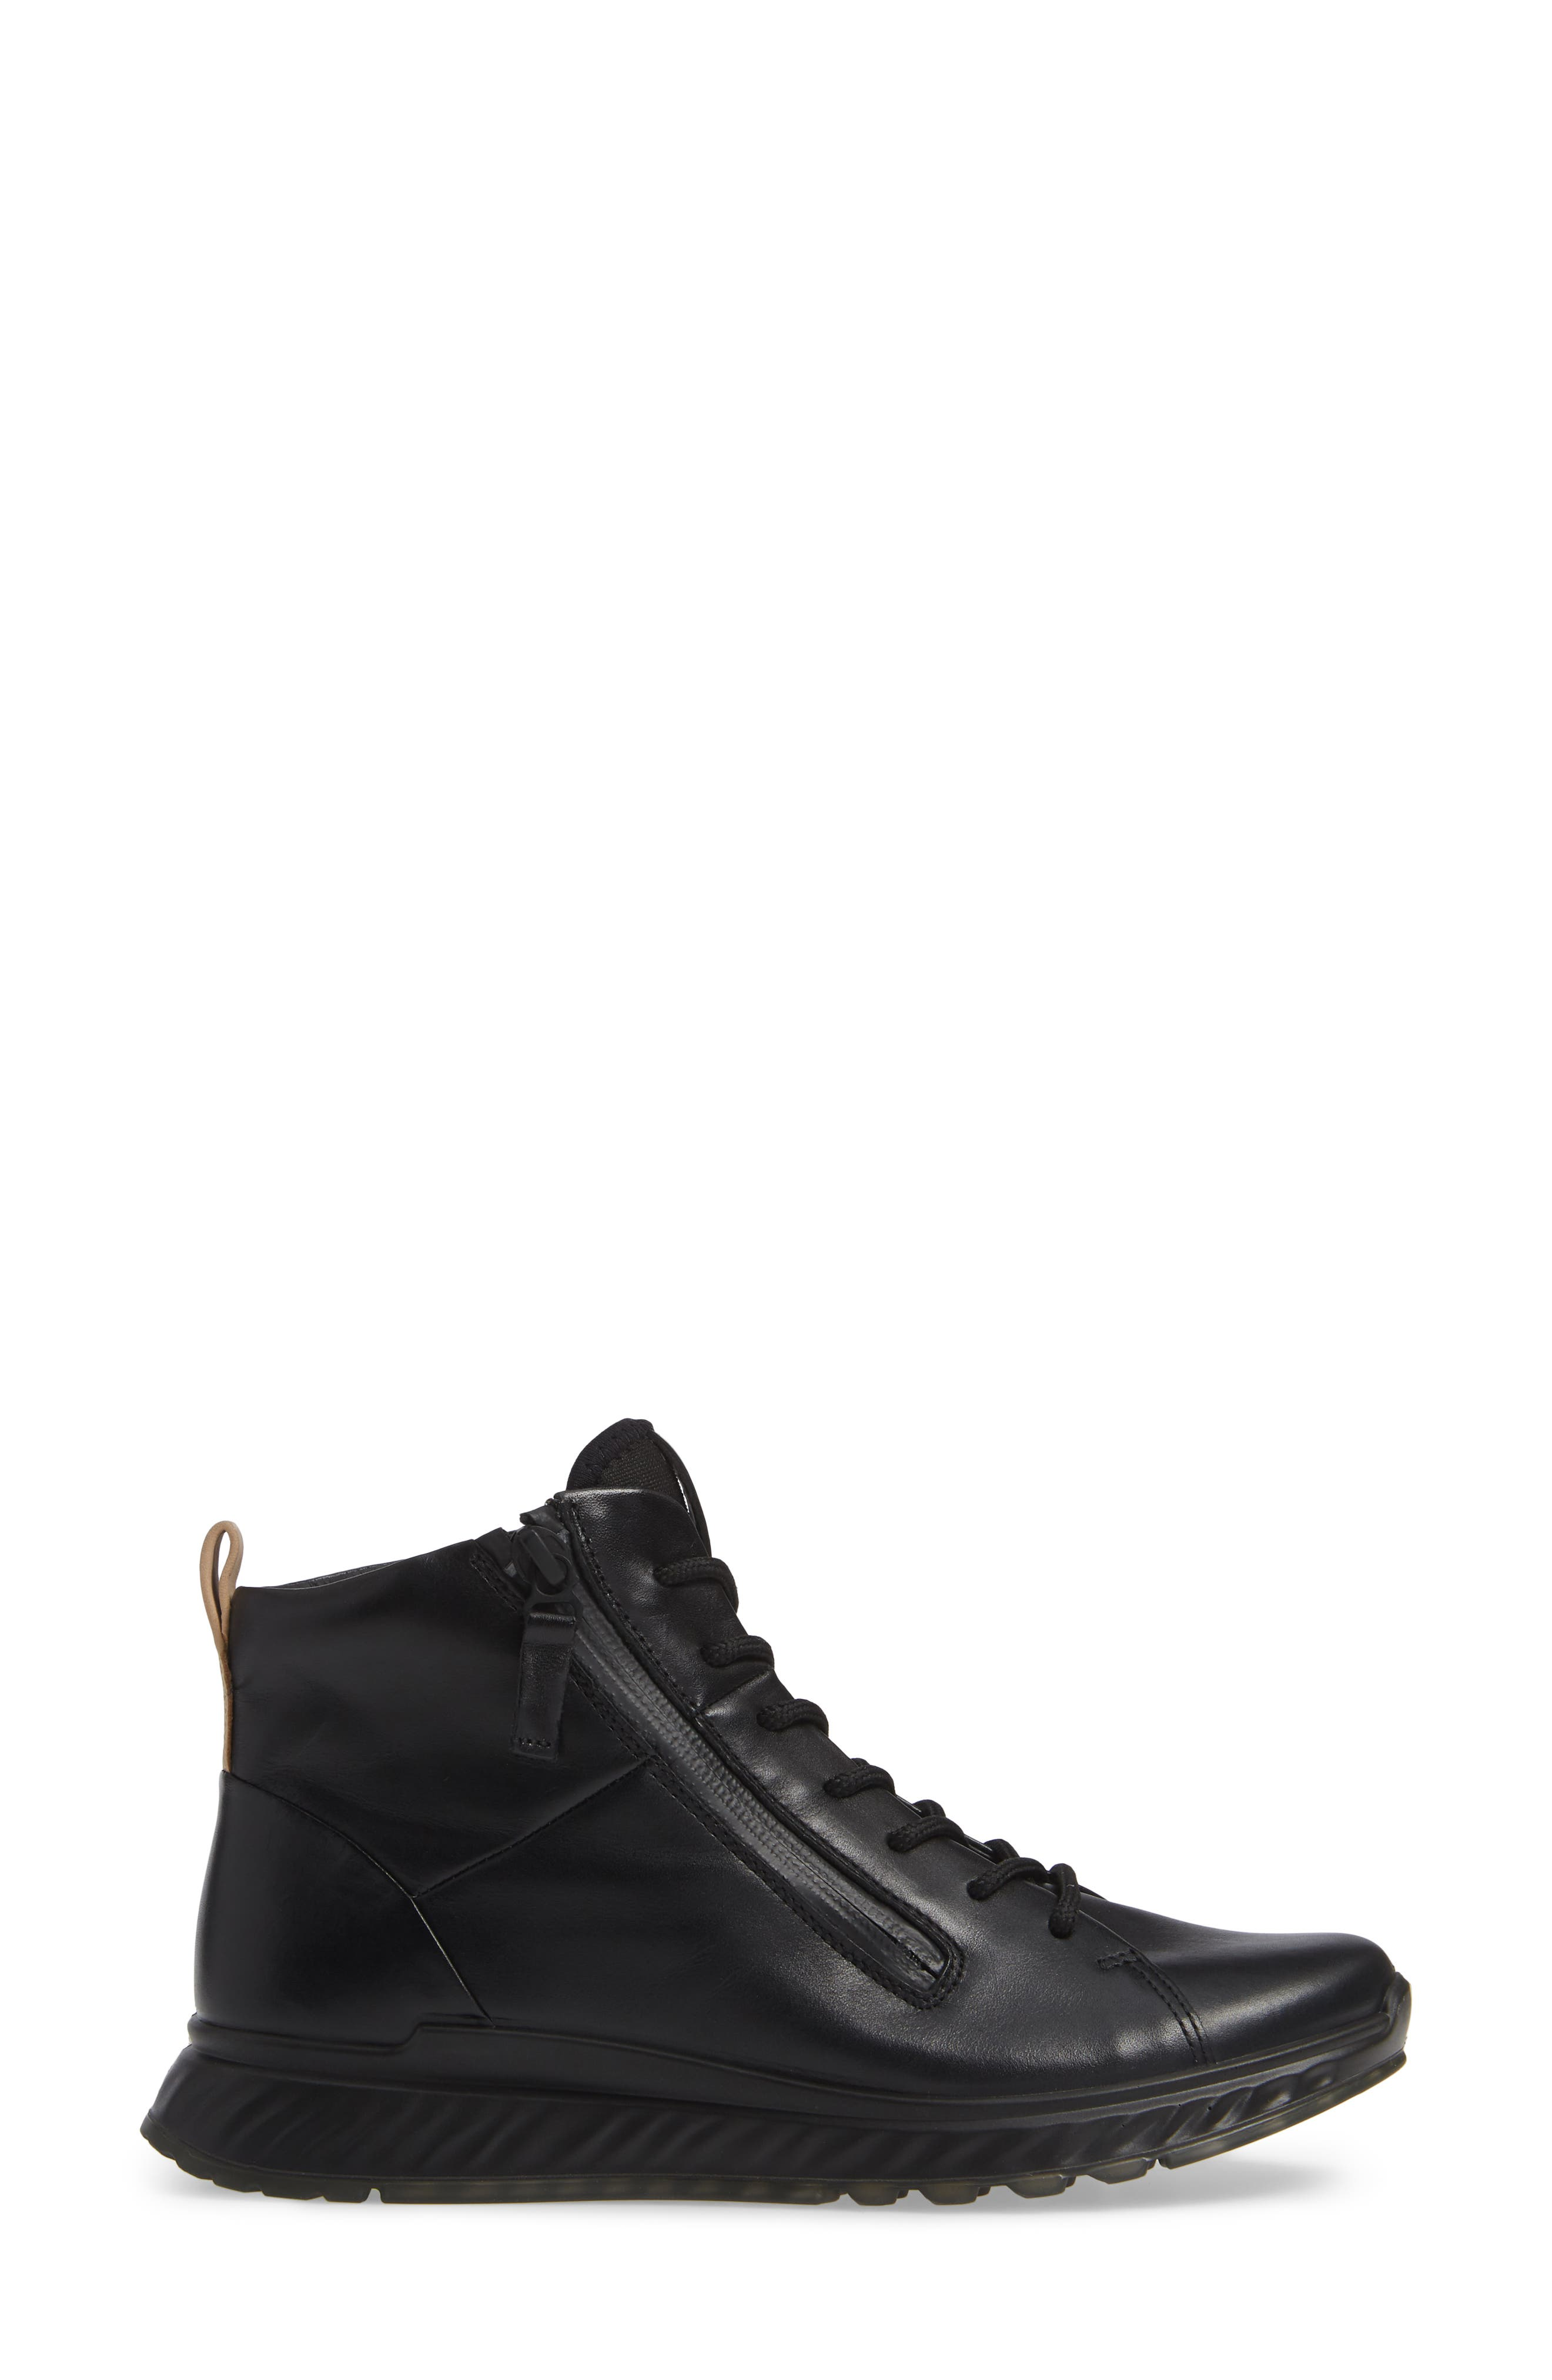 ST1 High Top Sneaker,                             Alternate thumbnail 3, color,                             BLACK LEATHER